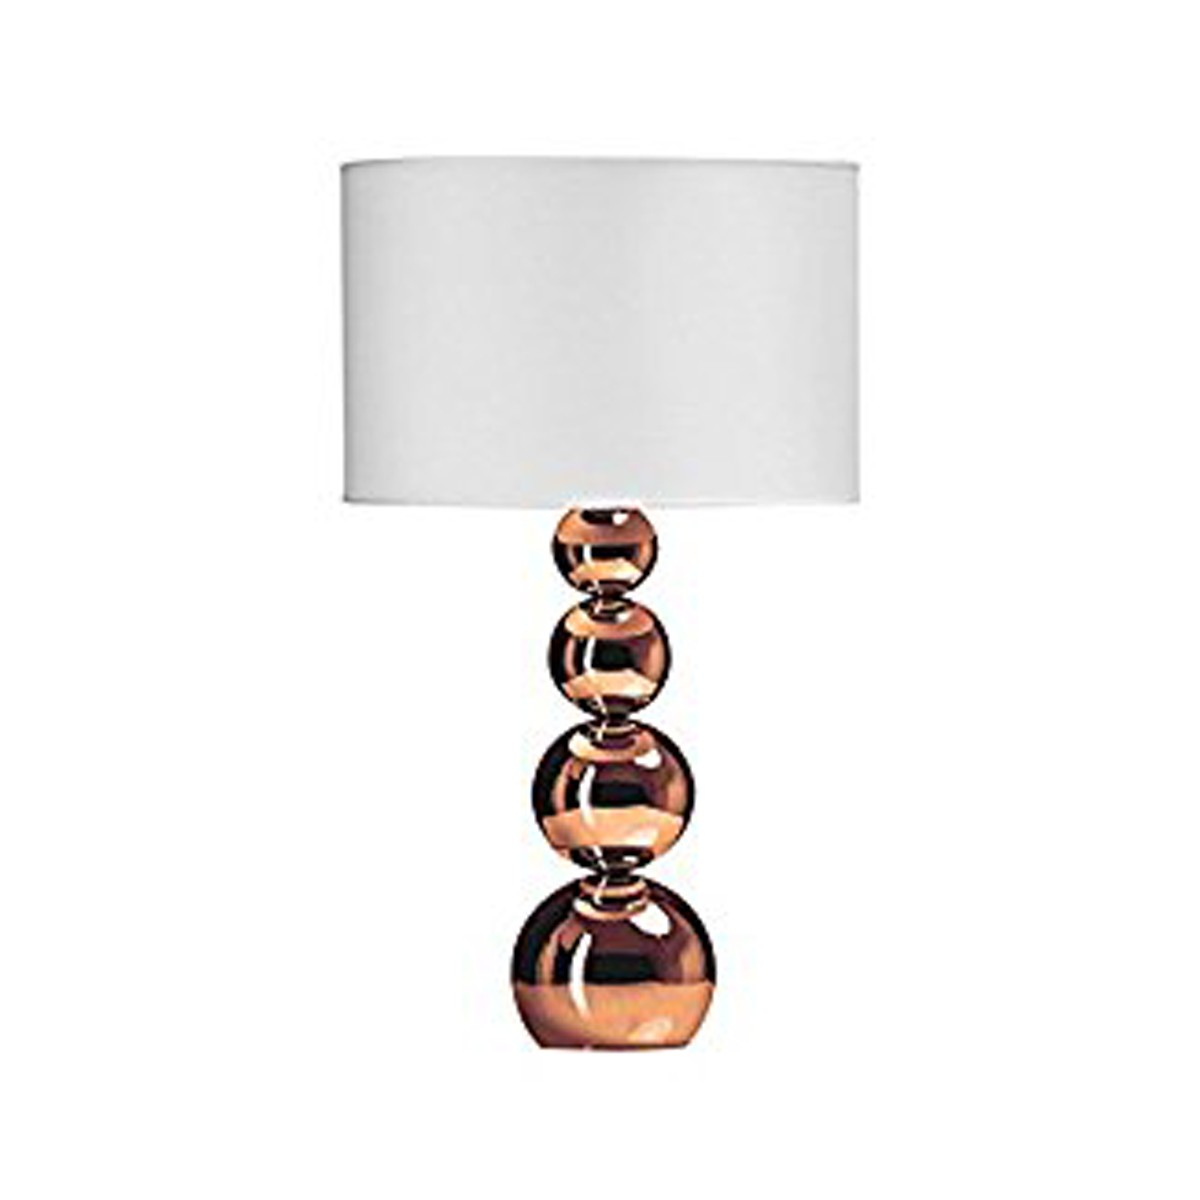 Copper Effect Balls Table Lamp with White Shade